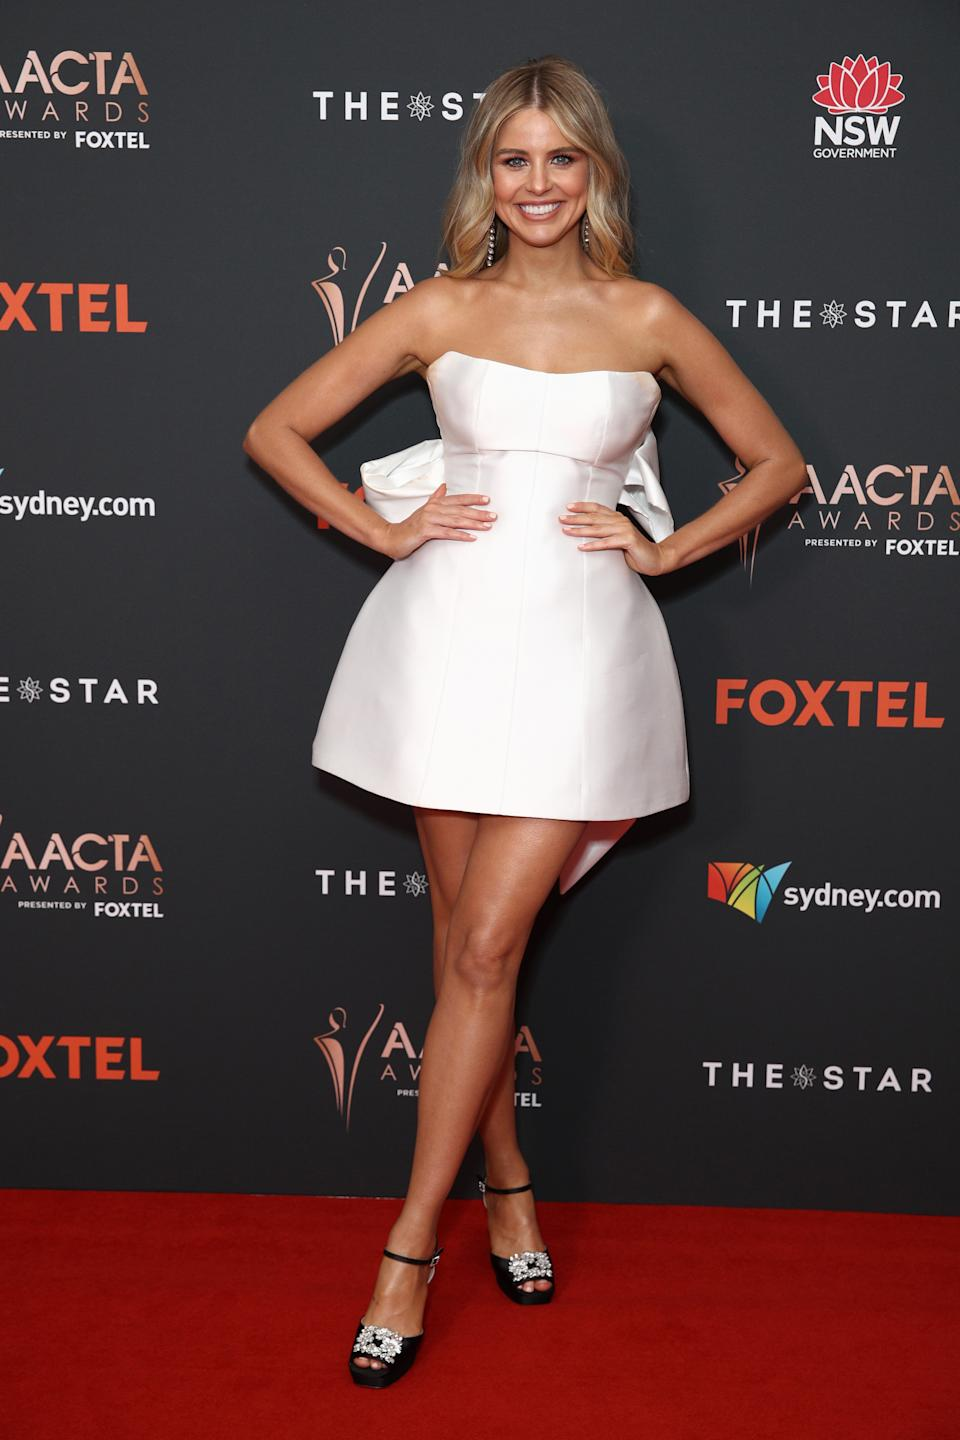 Tegan Martin arrives ahead of the 2020 AACTA Awards presented by Foxtel at The Star on November 30, 2020 in Sydney, Australia.